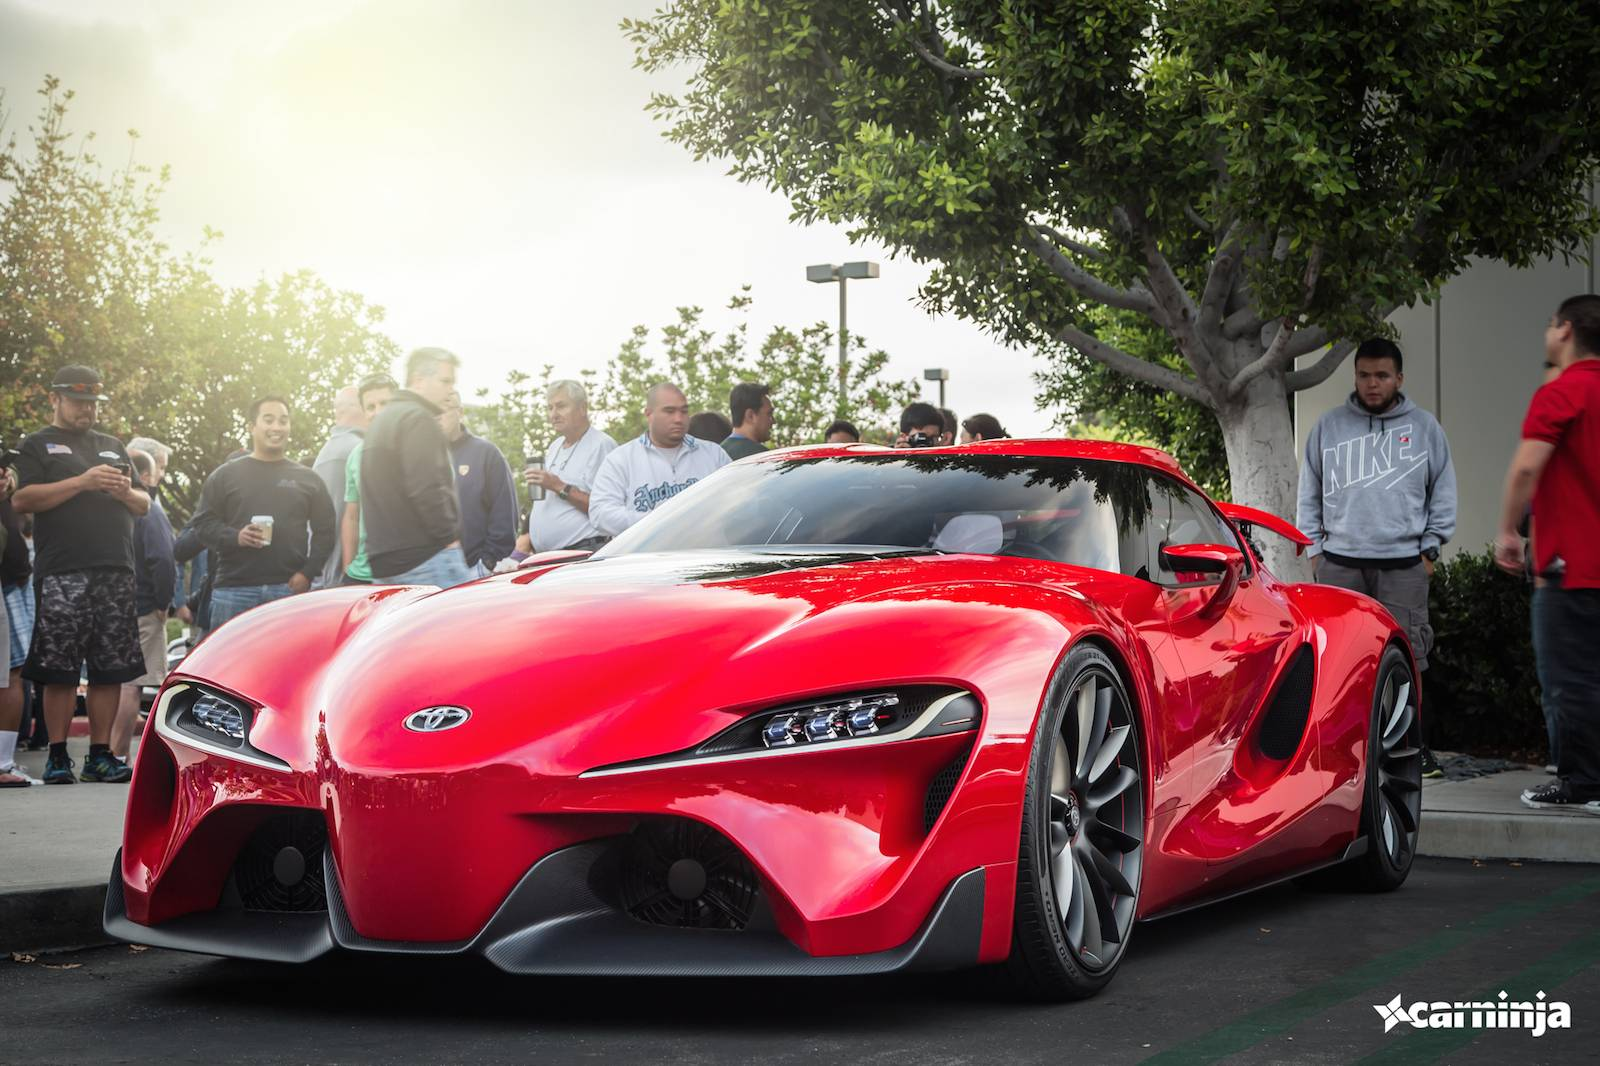 toyota ft 1 concept at cars and coffee irvine gtspirit. Black Bedroom Furniture Sets. Home Design Ideas